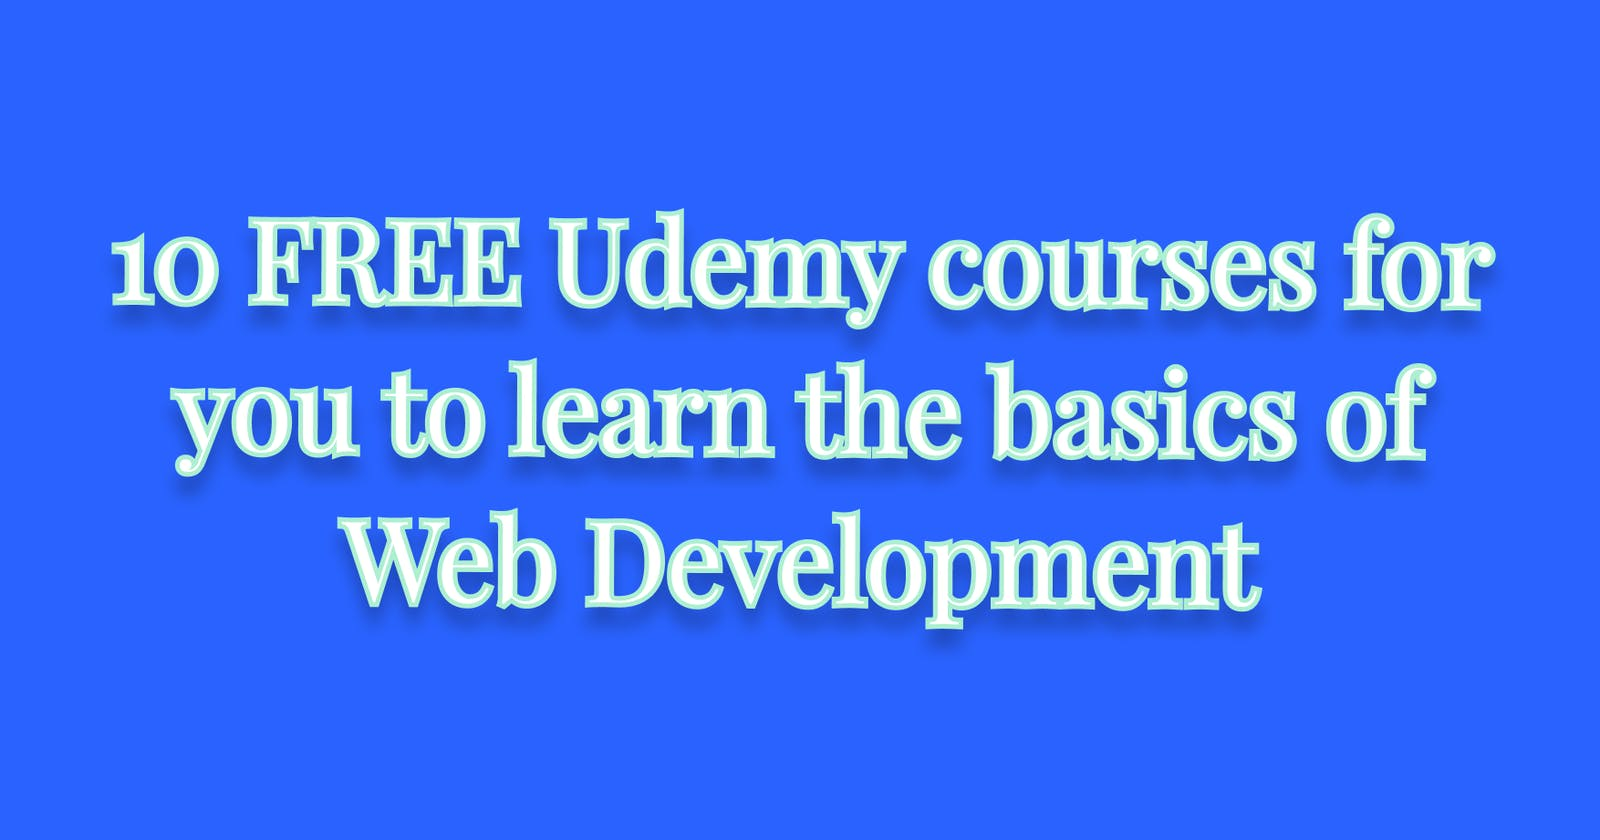 10 FREE Udemy courses for you to learn the basics of Web Development